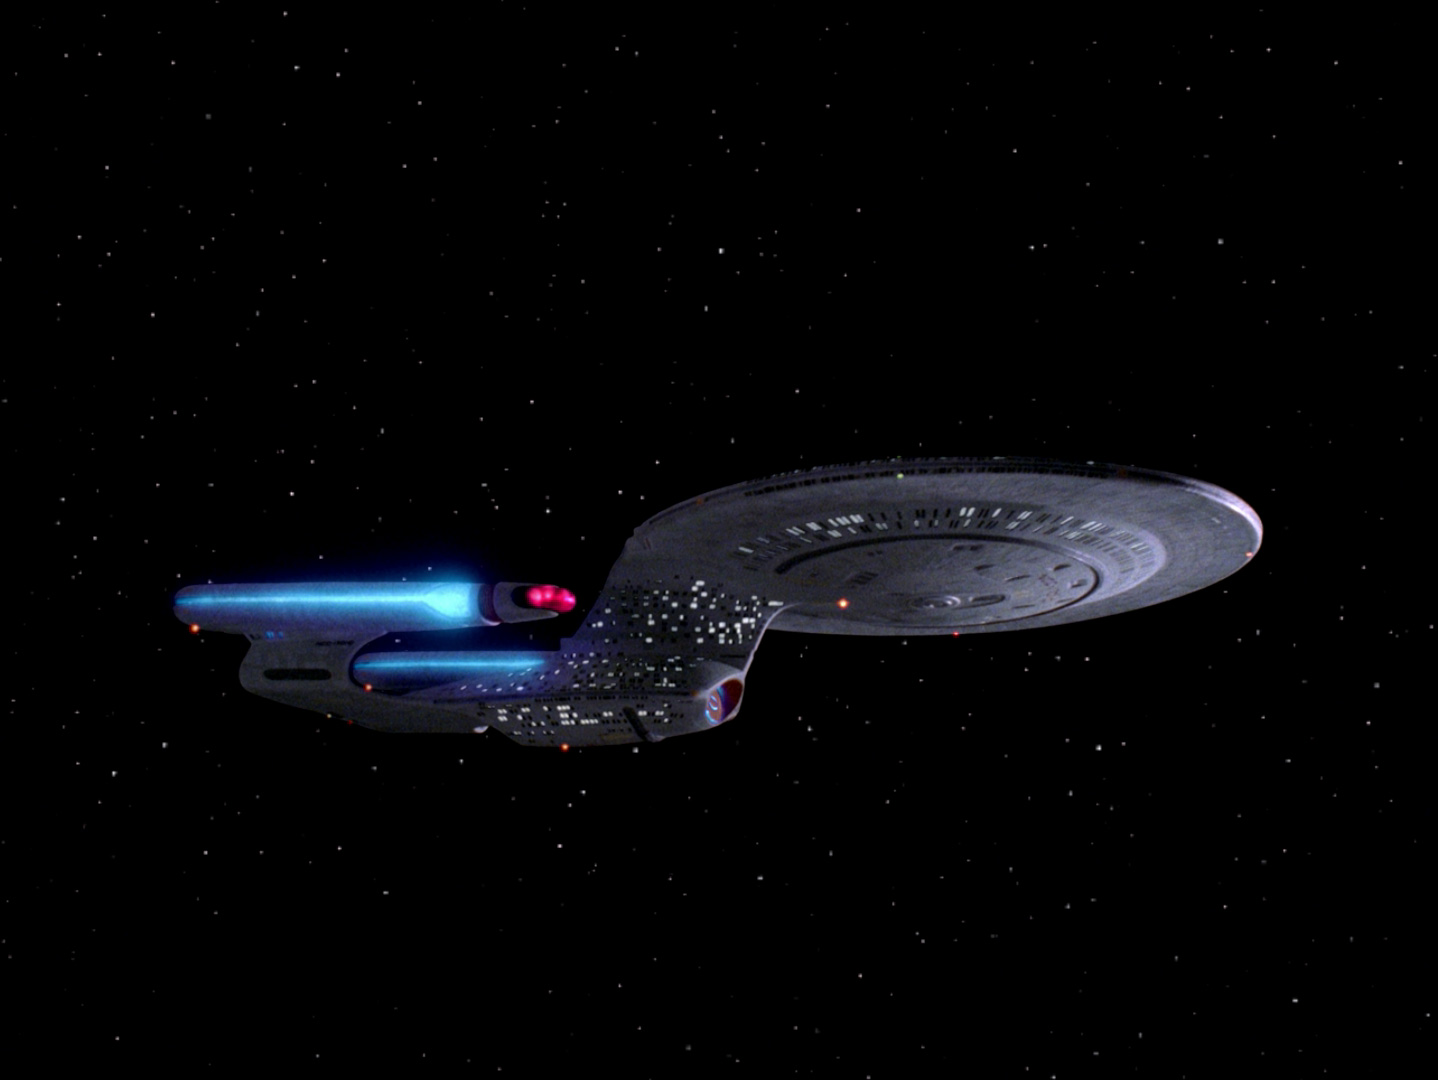 Star Trek: The Next Generation – Das kosmische Band Blu-ray Review